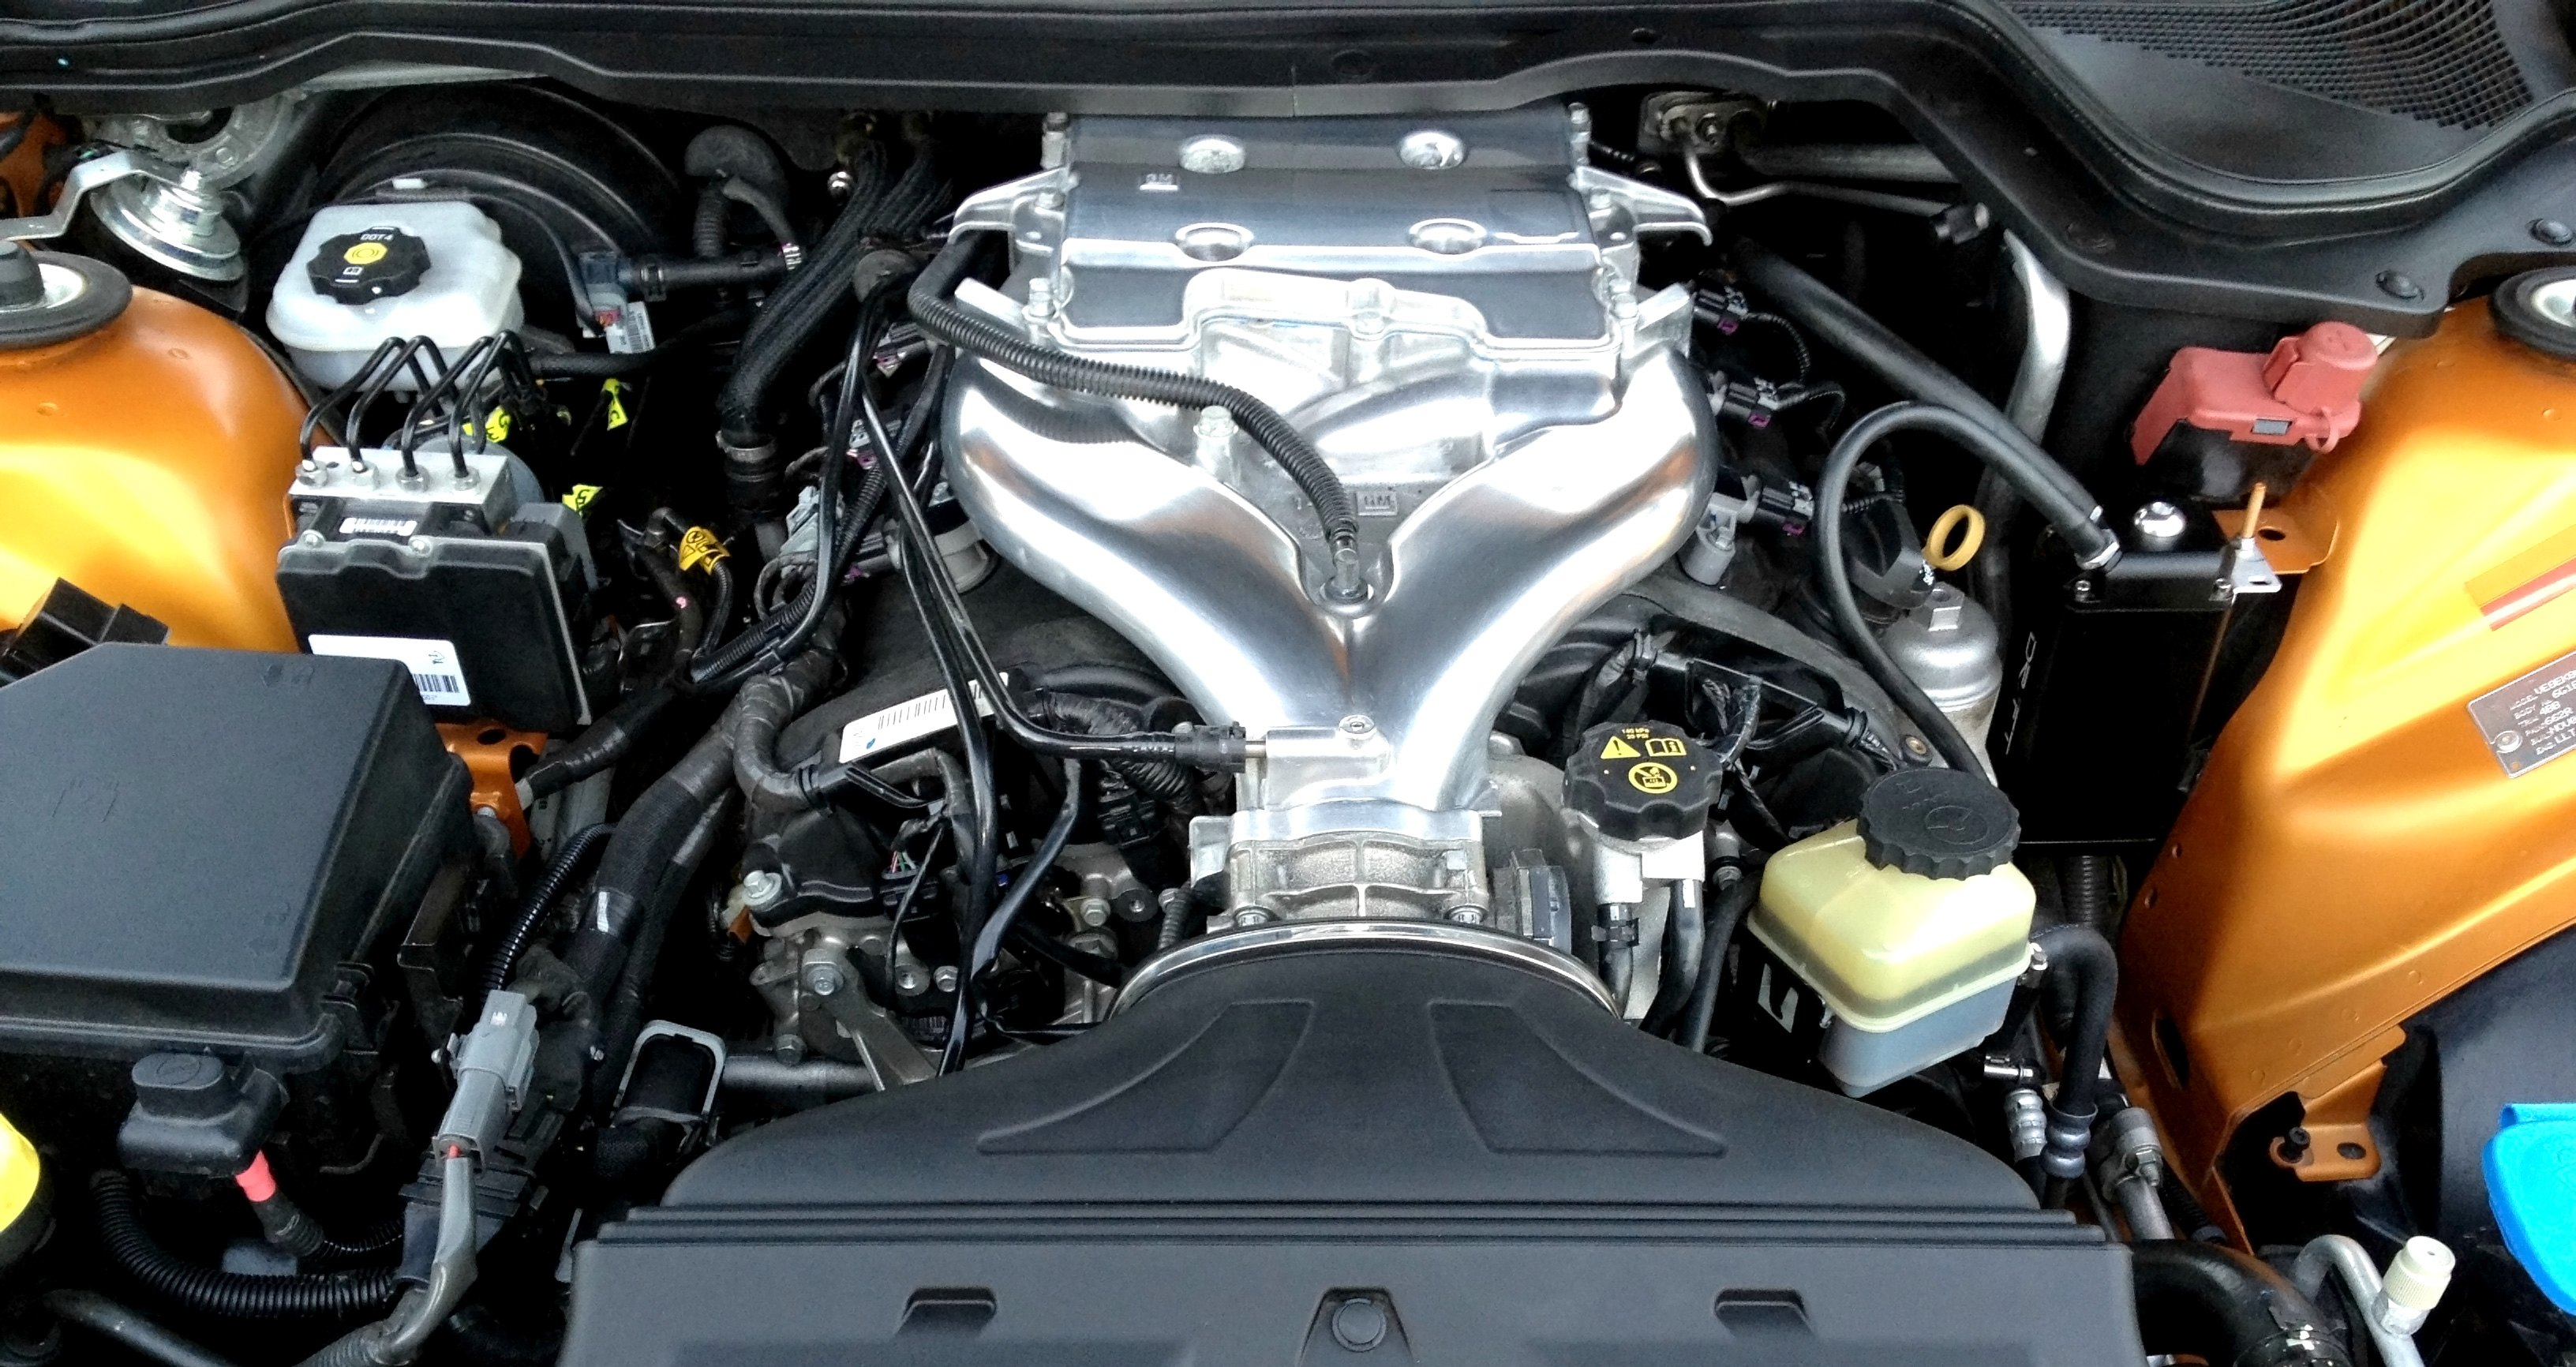 Intake Manifolds On V8 Engine